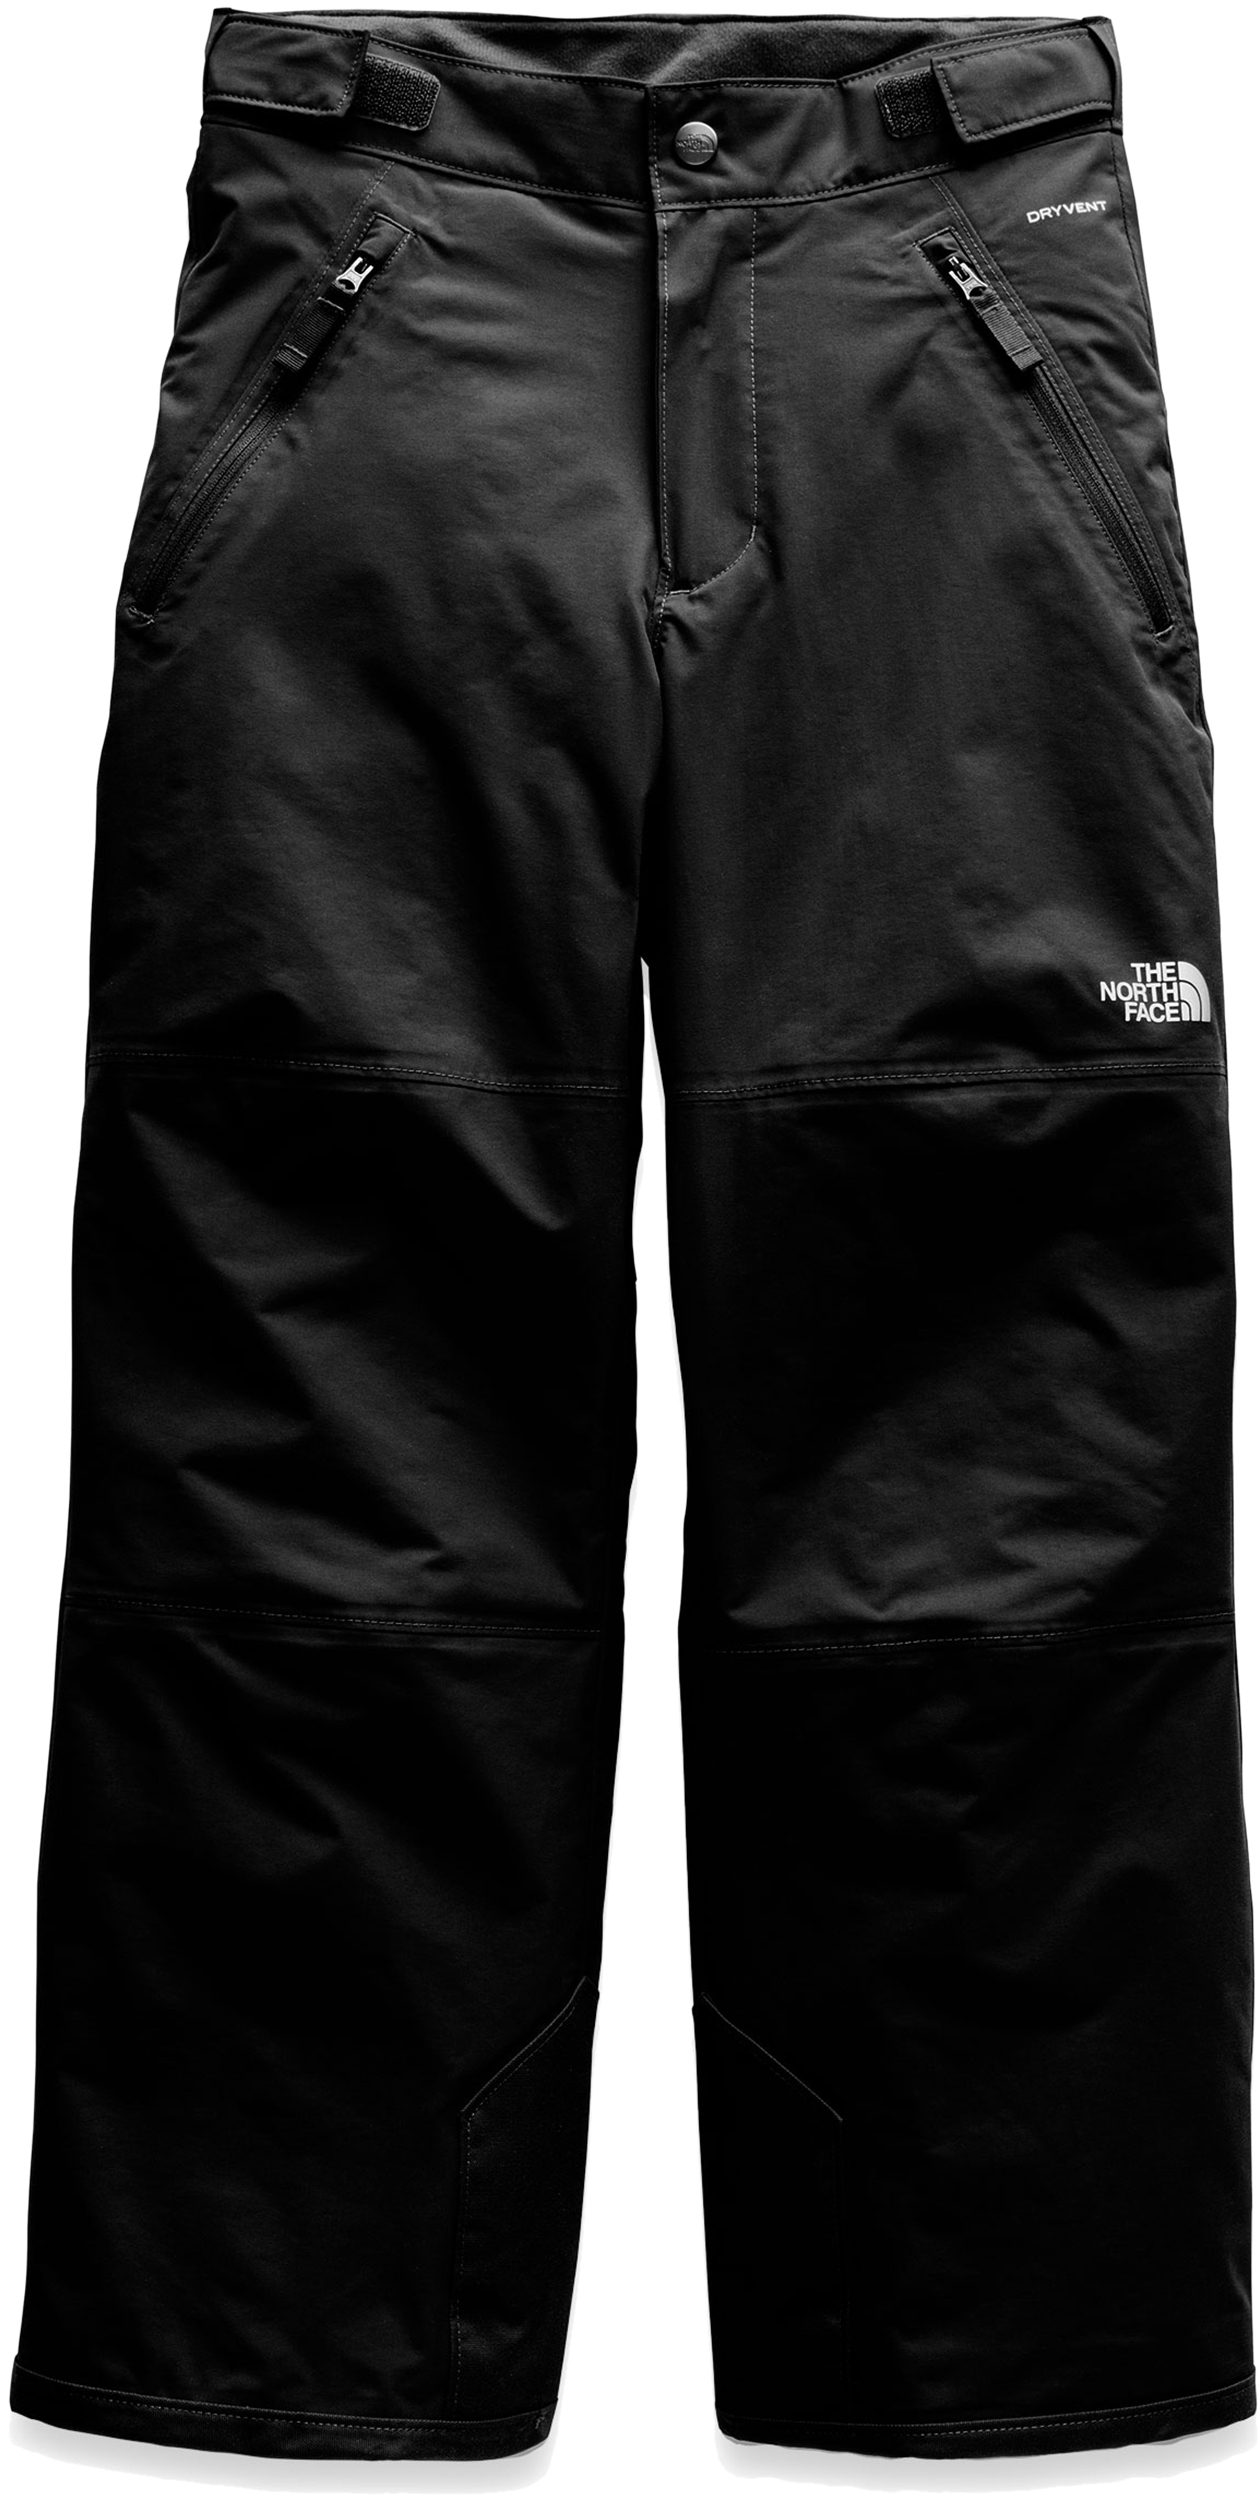 ca4c3d4ac The North Face Freedom Insulated Pants - Boys' - Youths | MEC